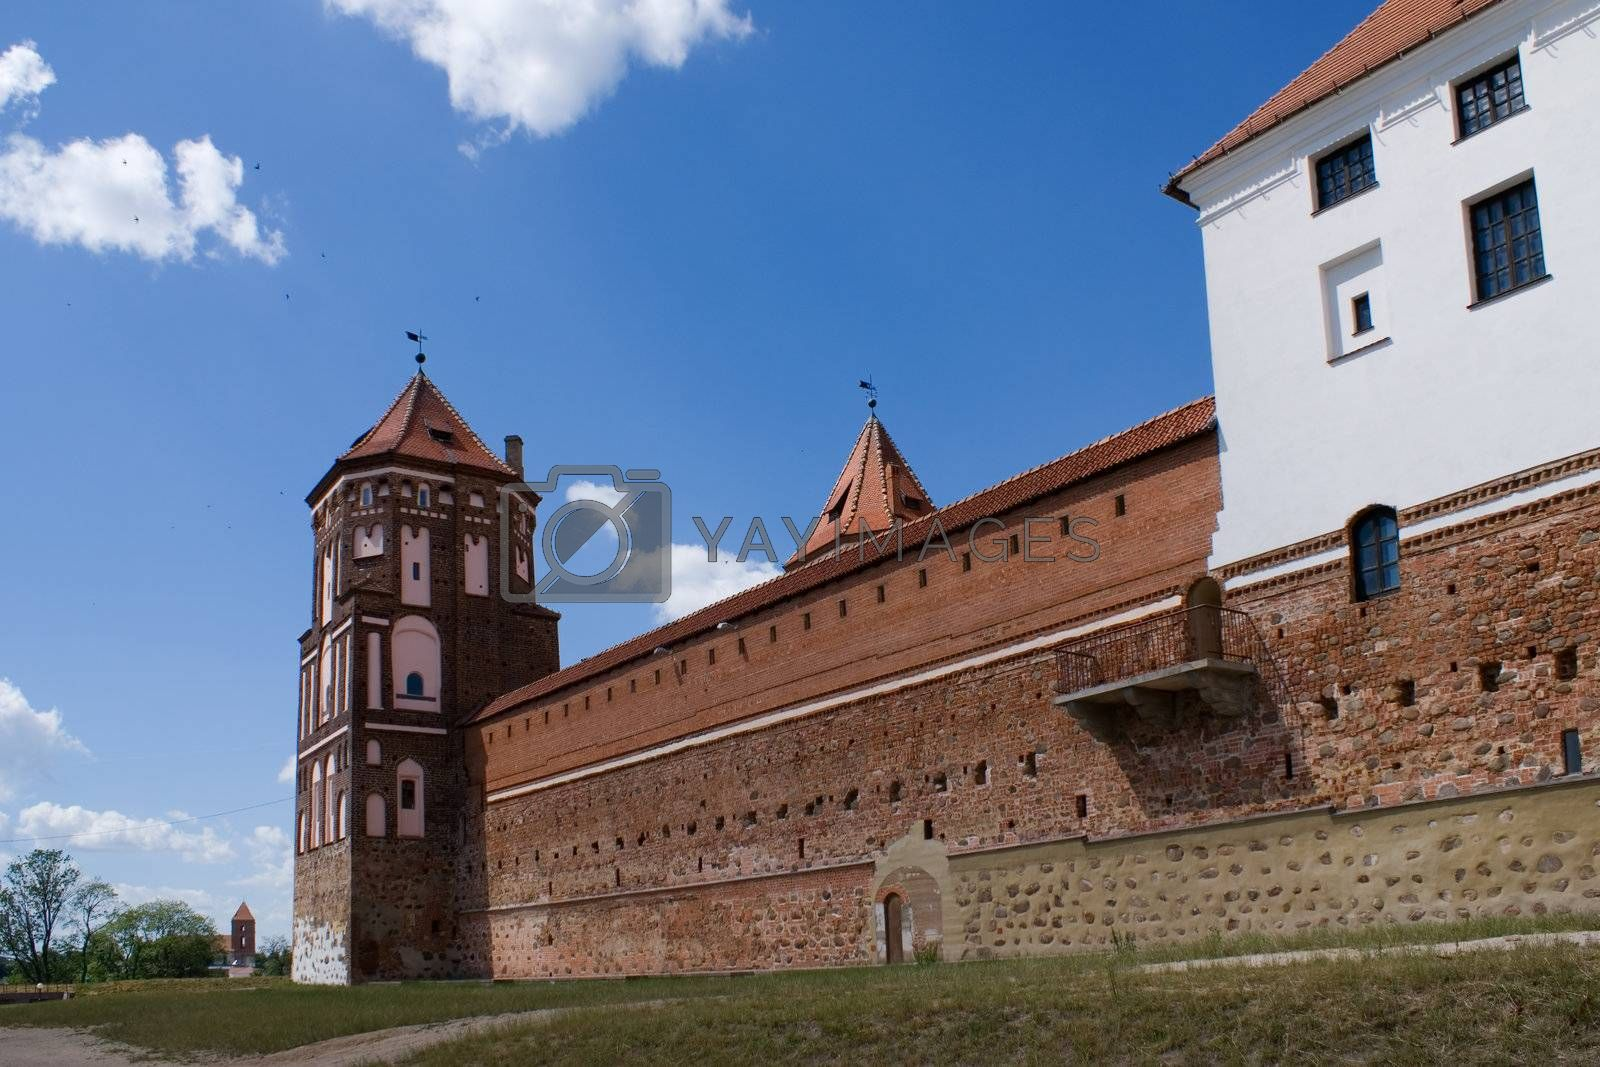 Tower and Wall with balcony of Mir Castle, Belarus